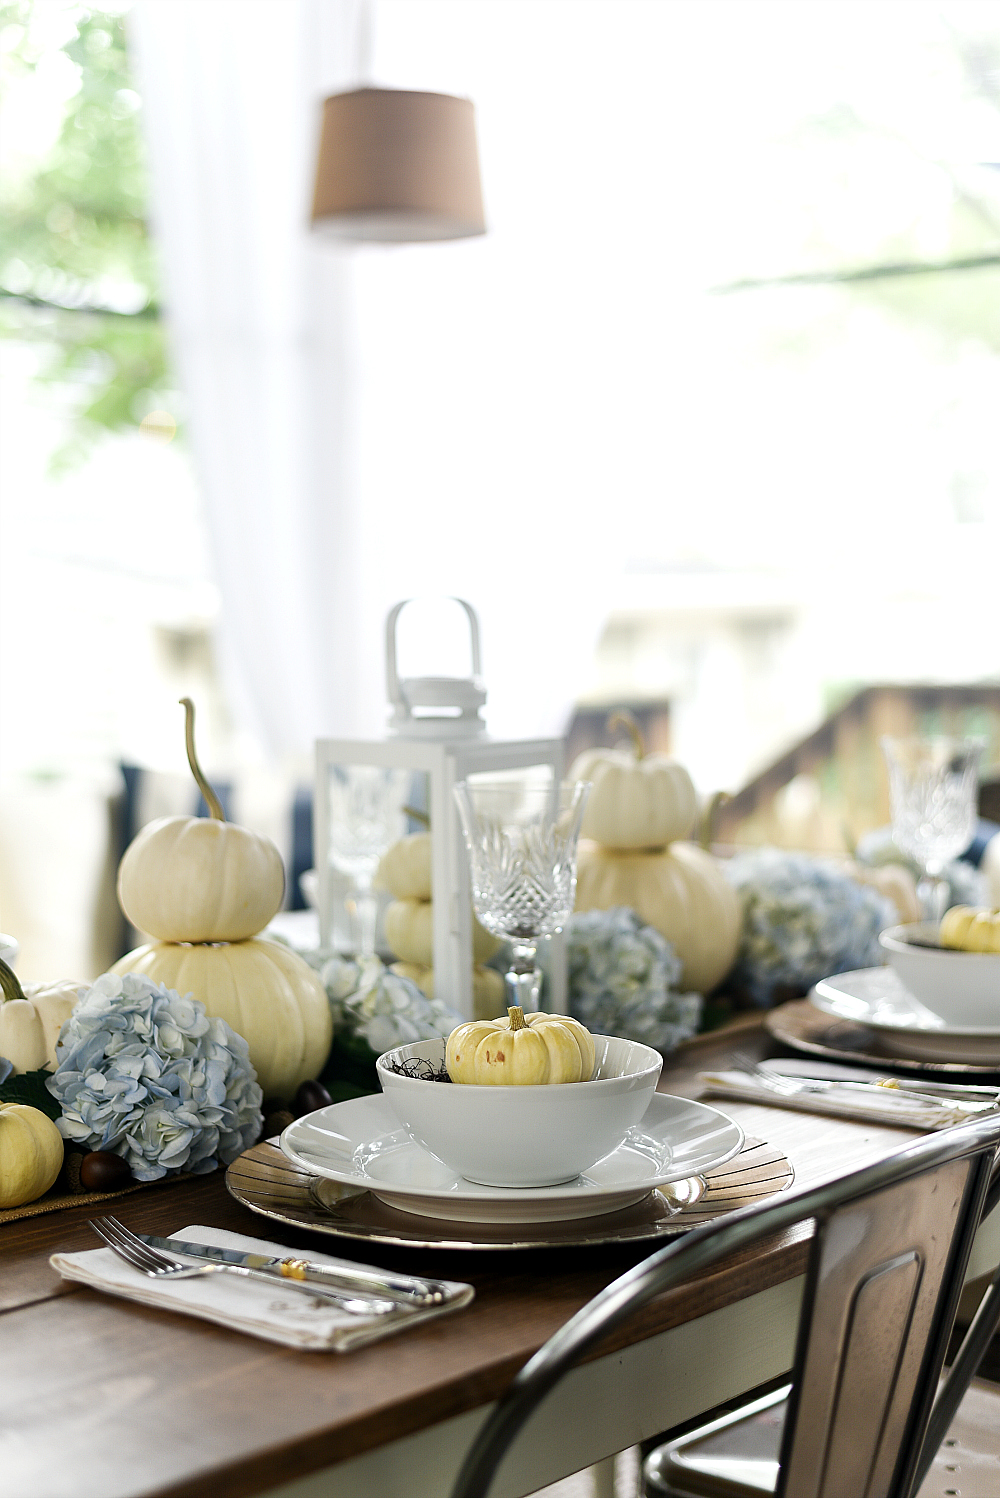 Table Setting for Fall - Ideas with White Pumpkins and Hydrangeas